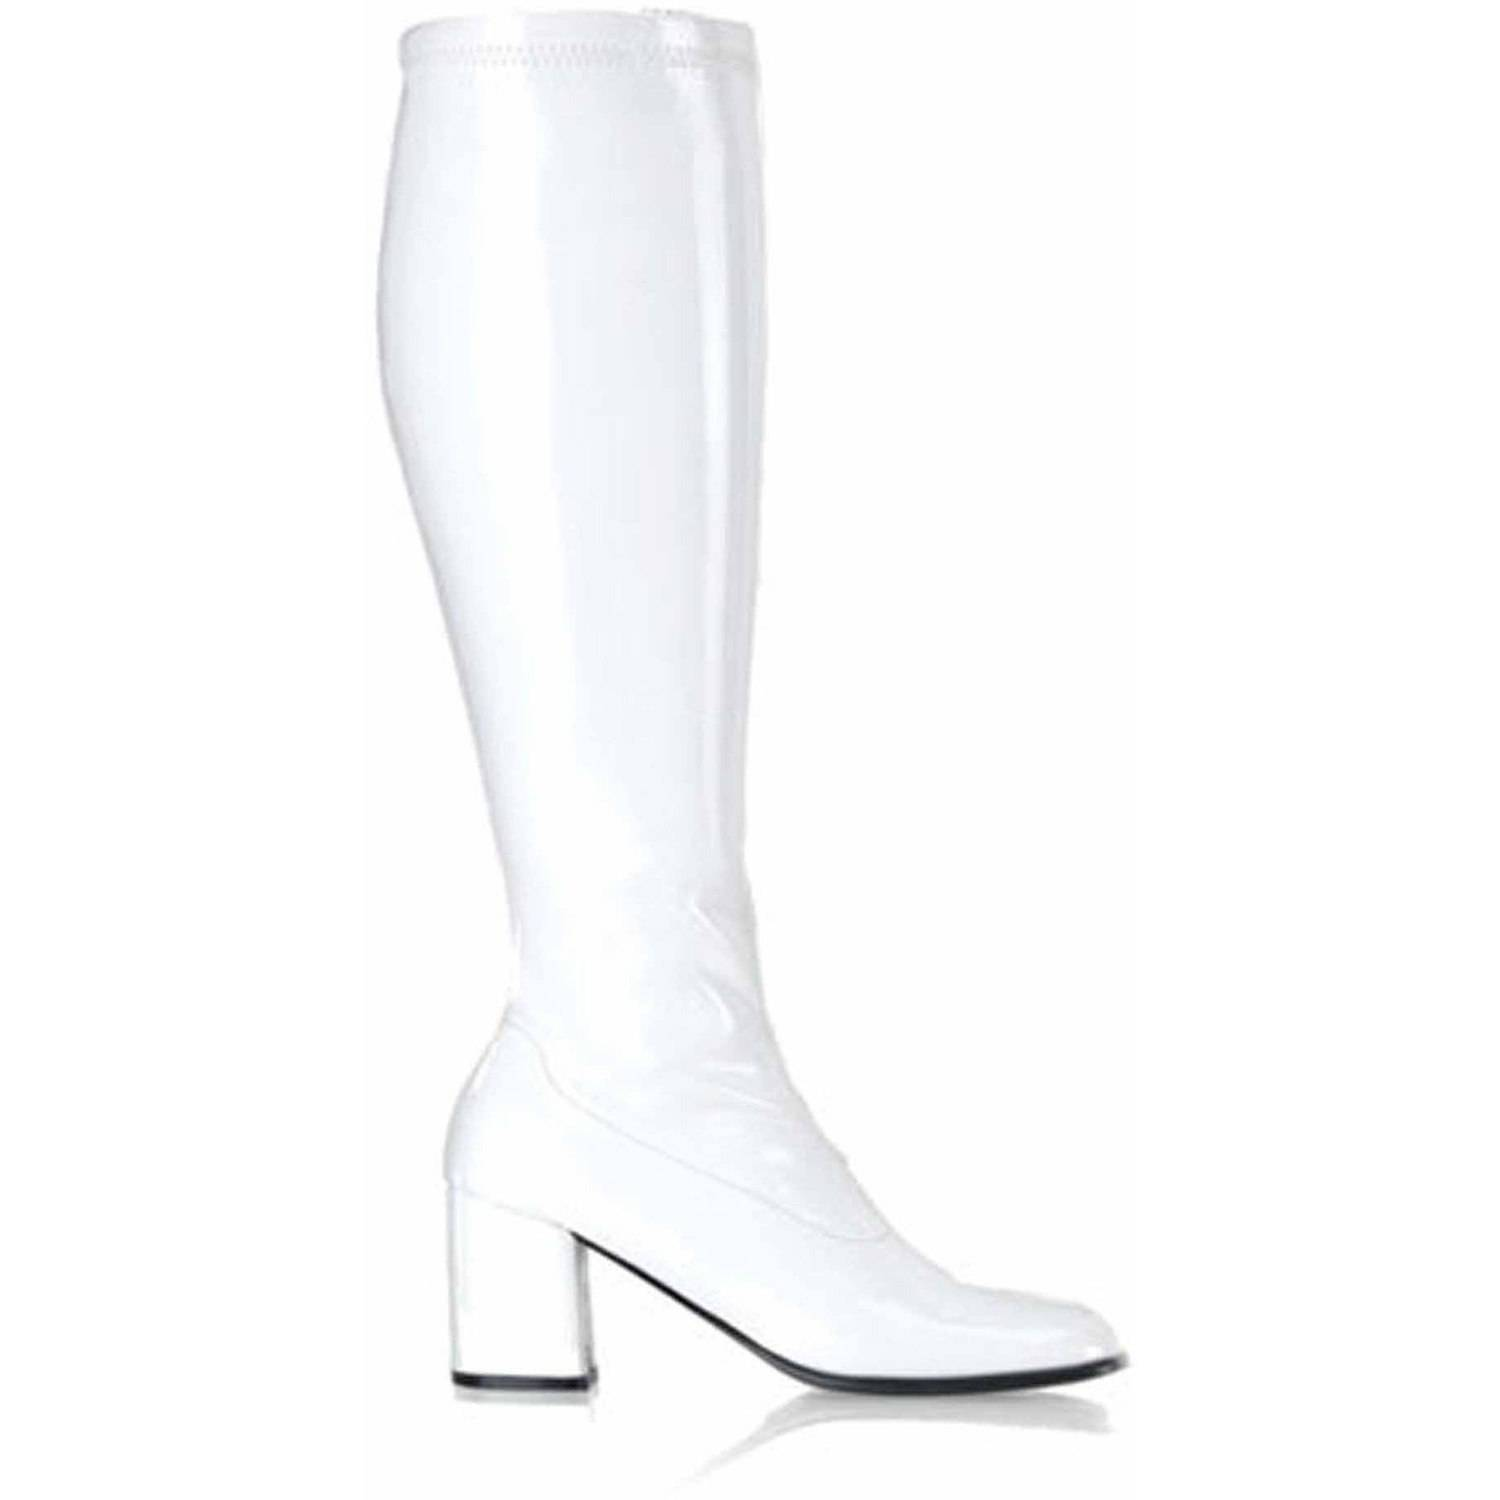 Gogo White Boots Women's Adult Halloween Accessory